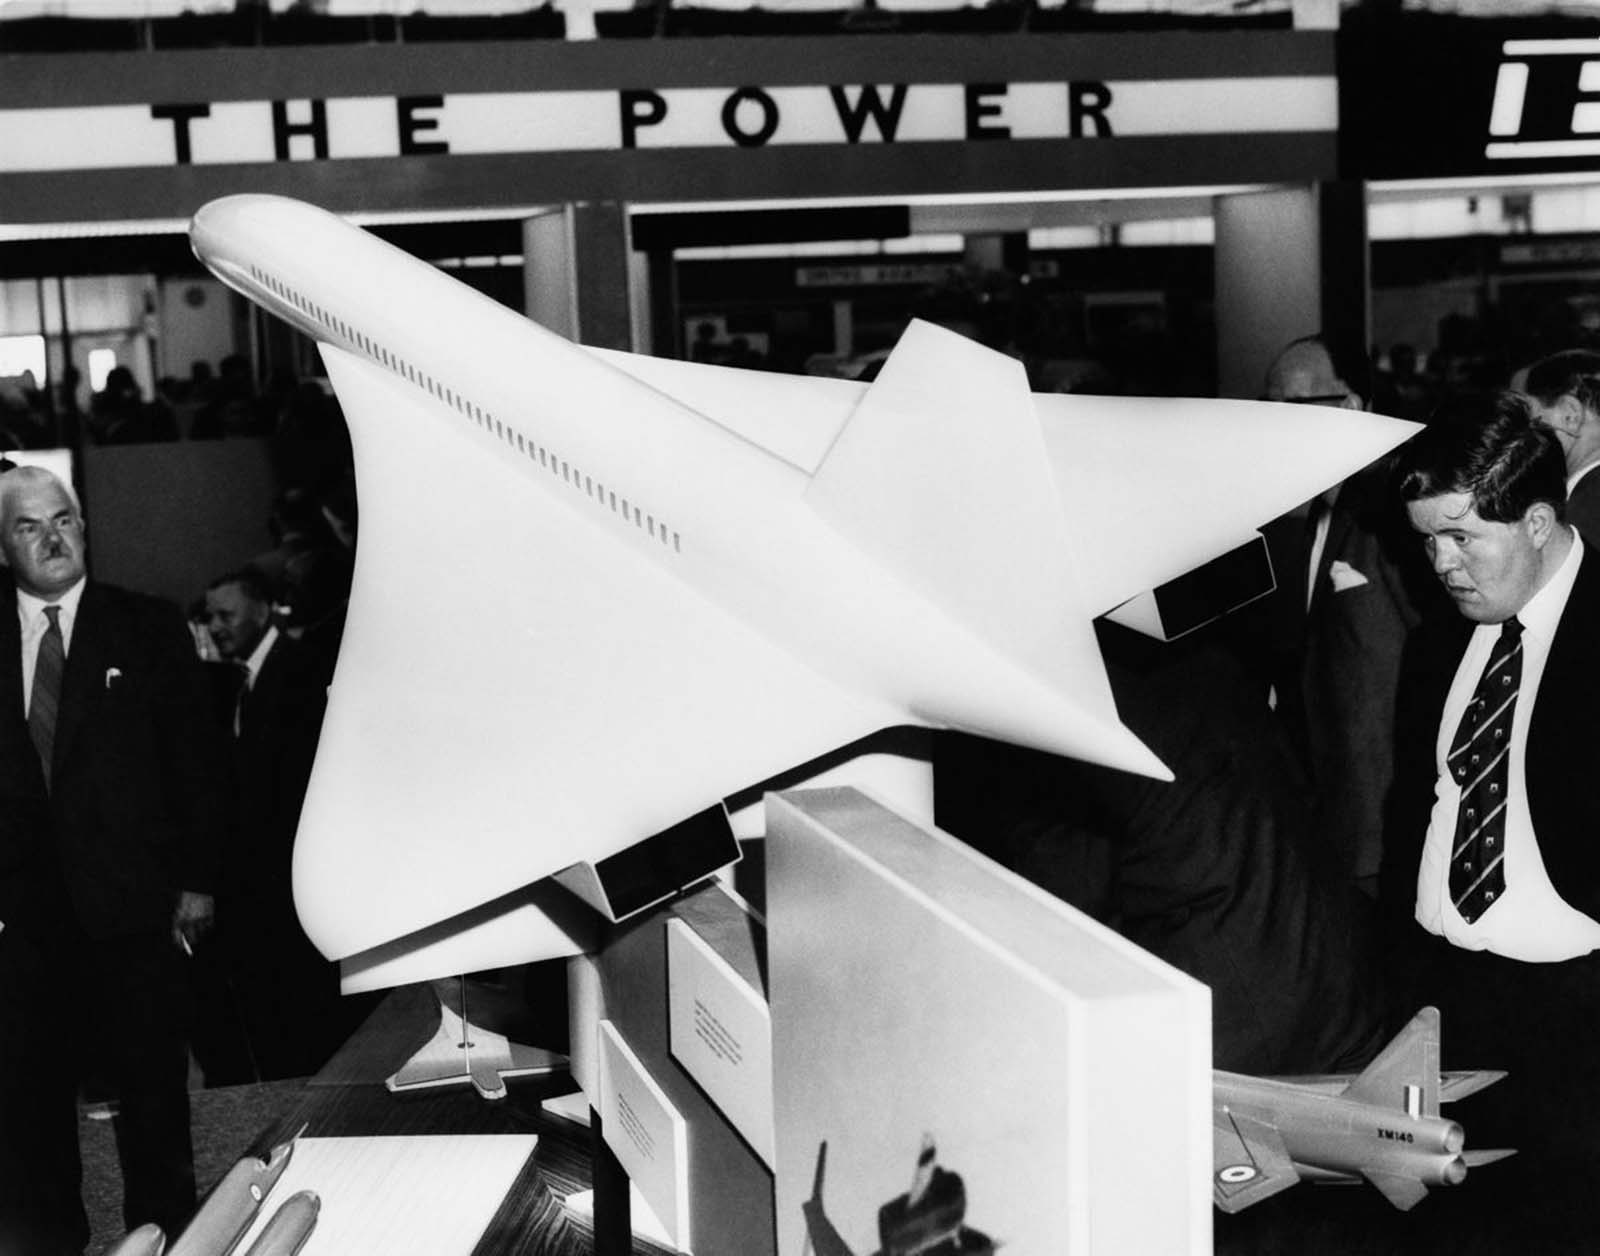 A Concorde model at the Farnborough Air Show Exhibition in England. 1962.